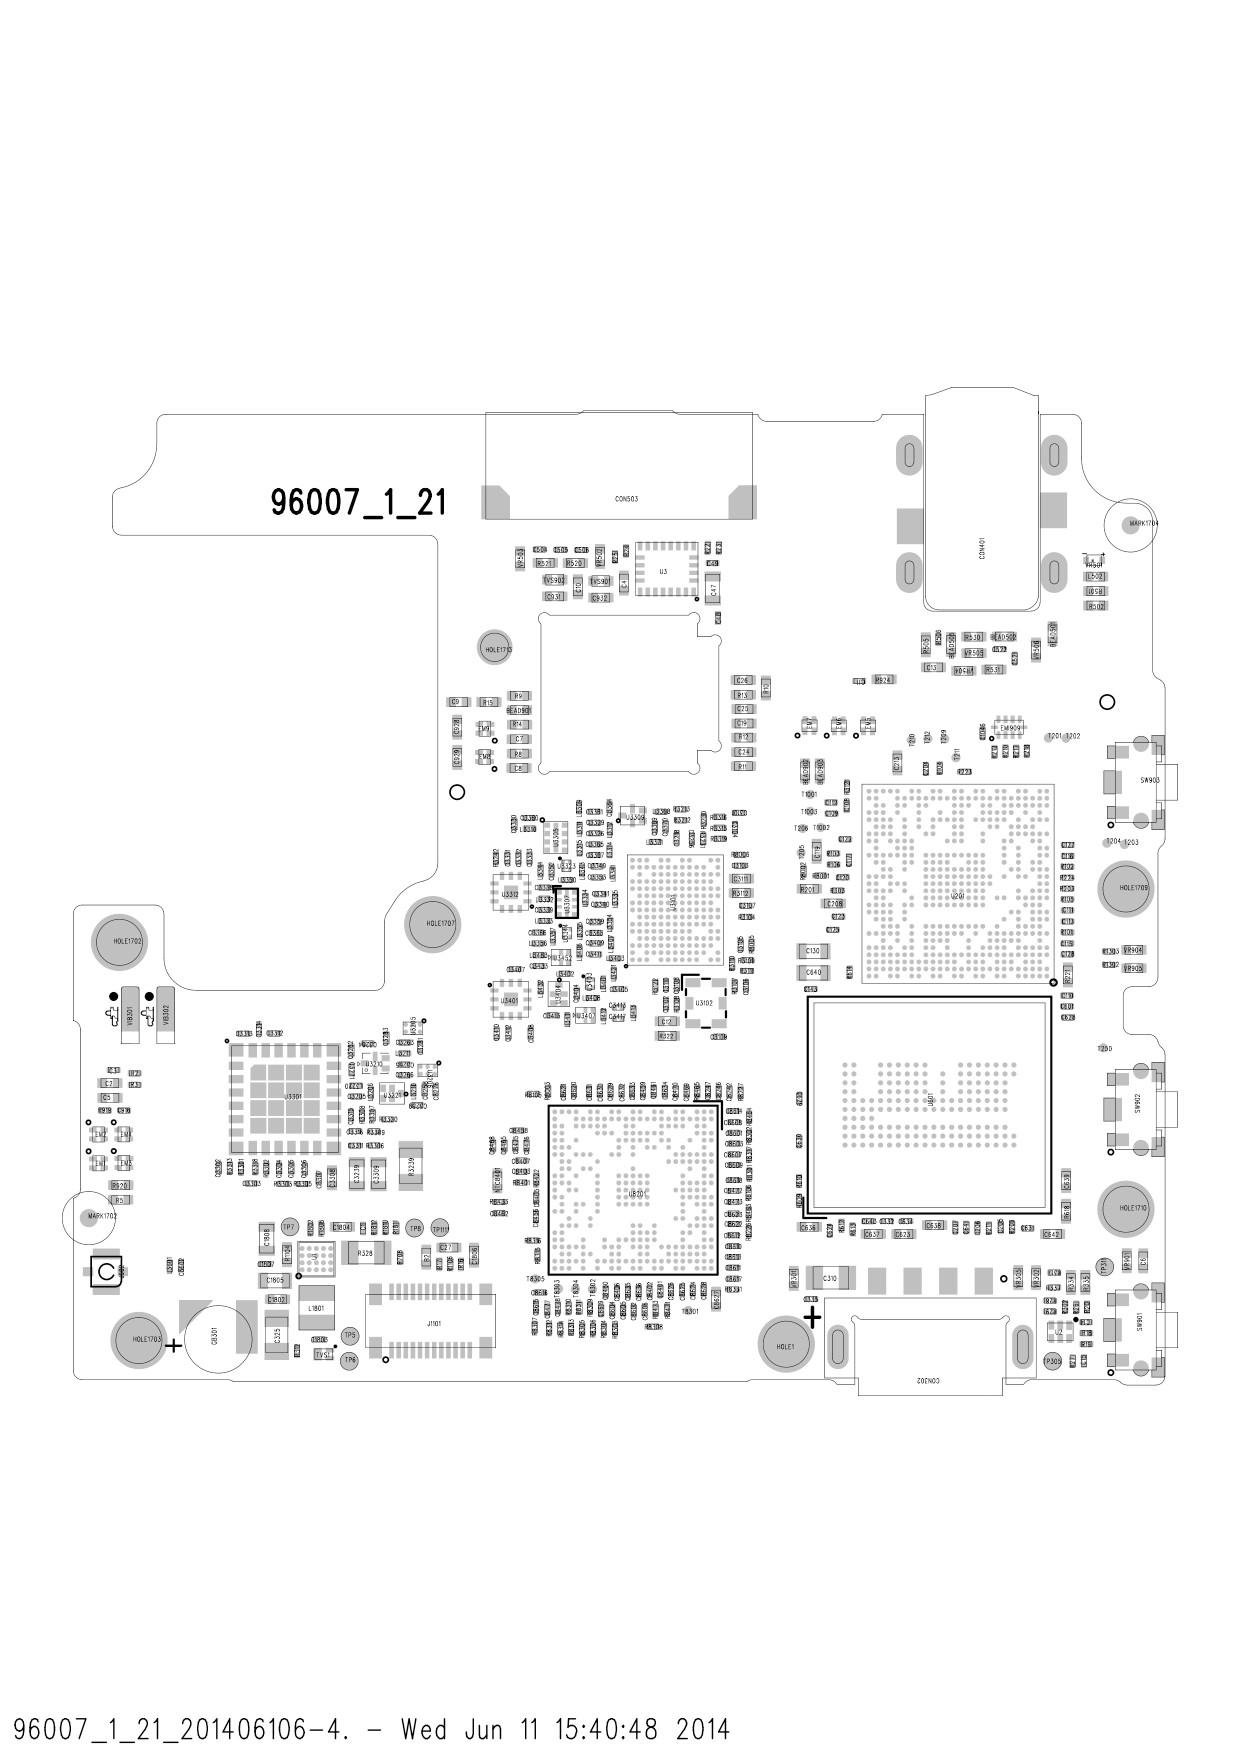 Xiaomi 1S 4G Service Manuals with Schematics and PCB